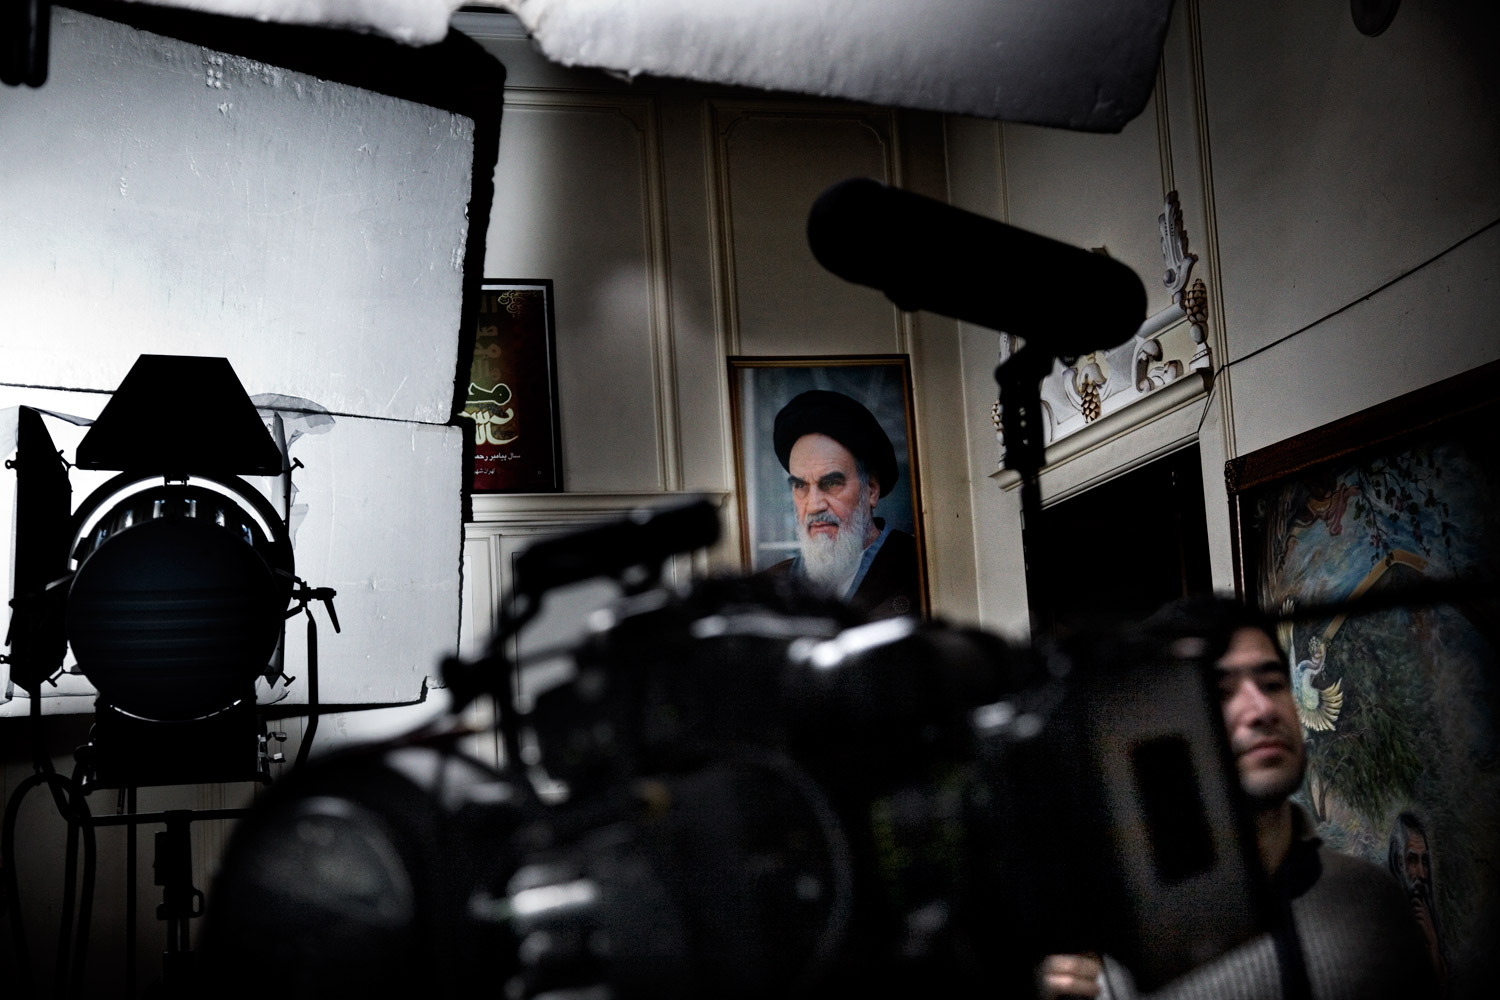 Production pauses on set during the filming of A Woman Is Always Involved by Kamal Tabrizi in Tehran.